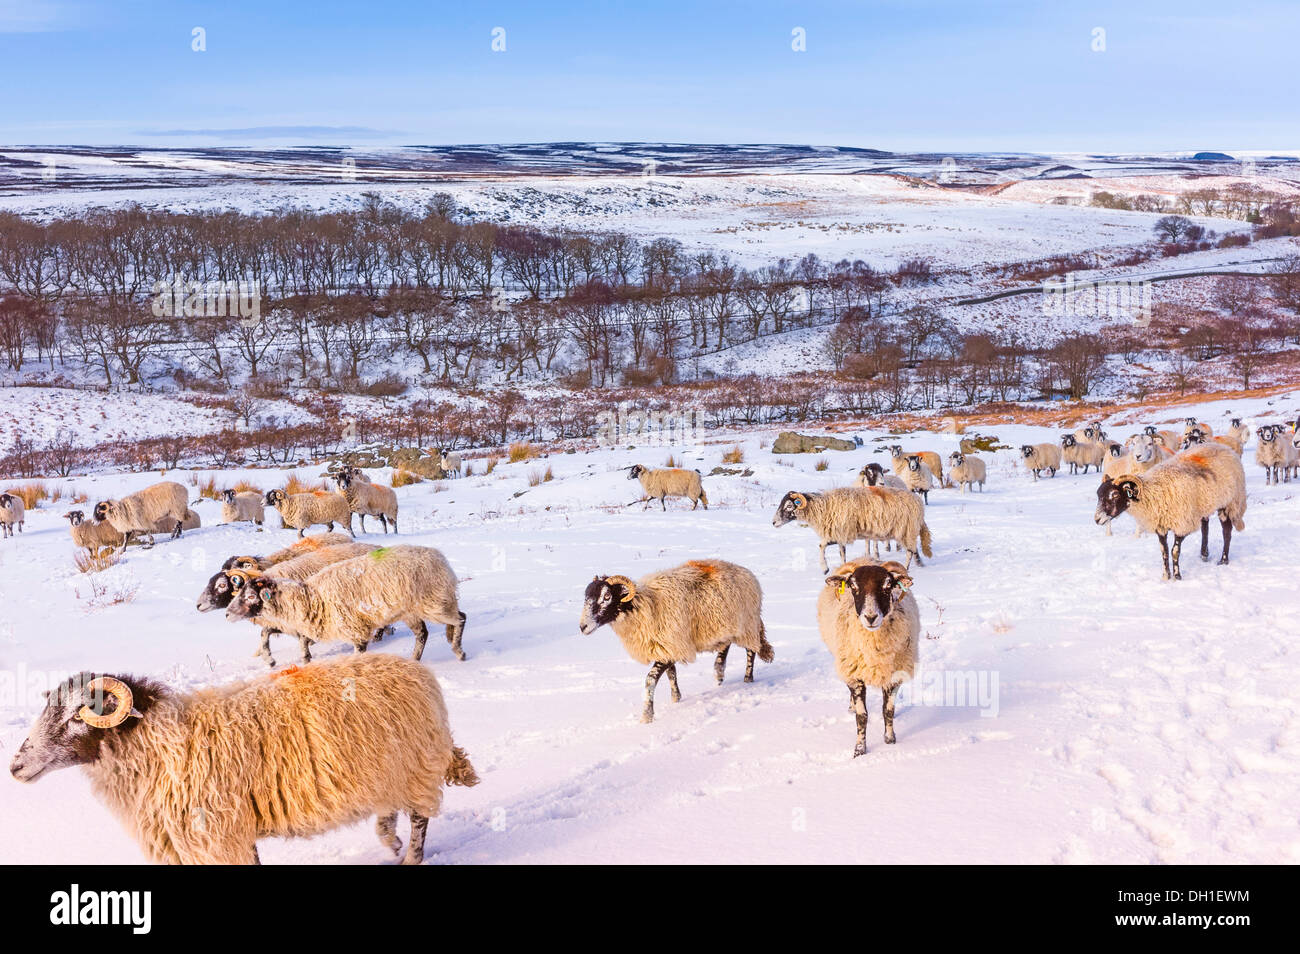 Sheep search for food following heavy snowfall on the North York Moors near Goathland, Yorkshire, UK. - Stock Image